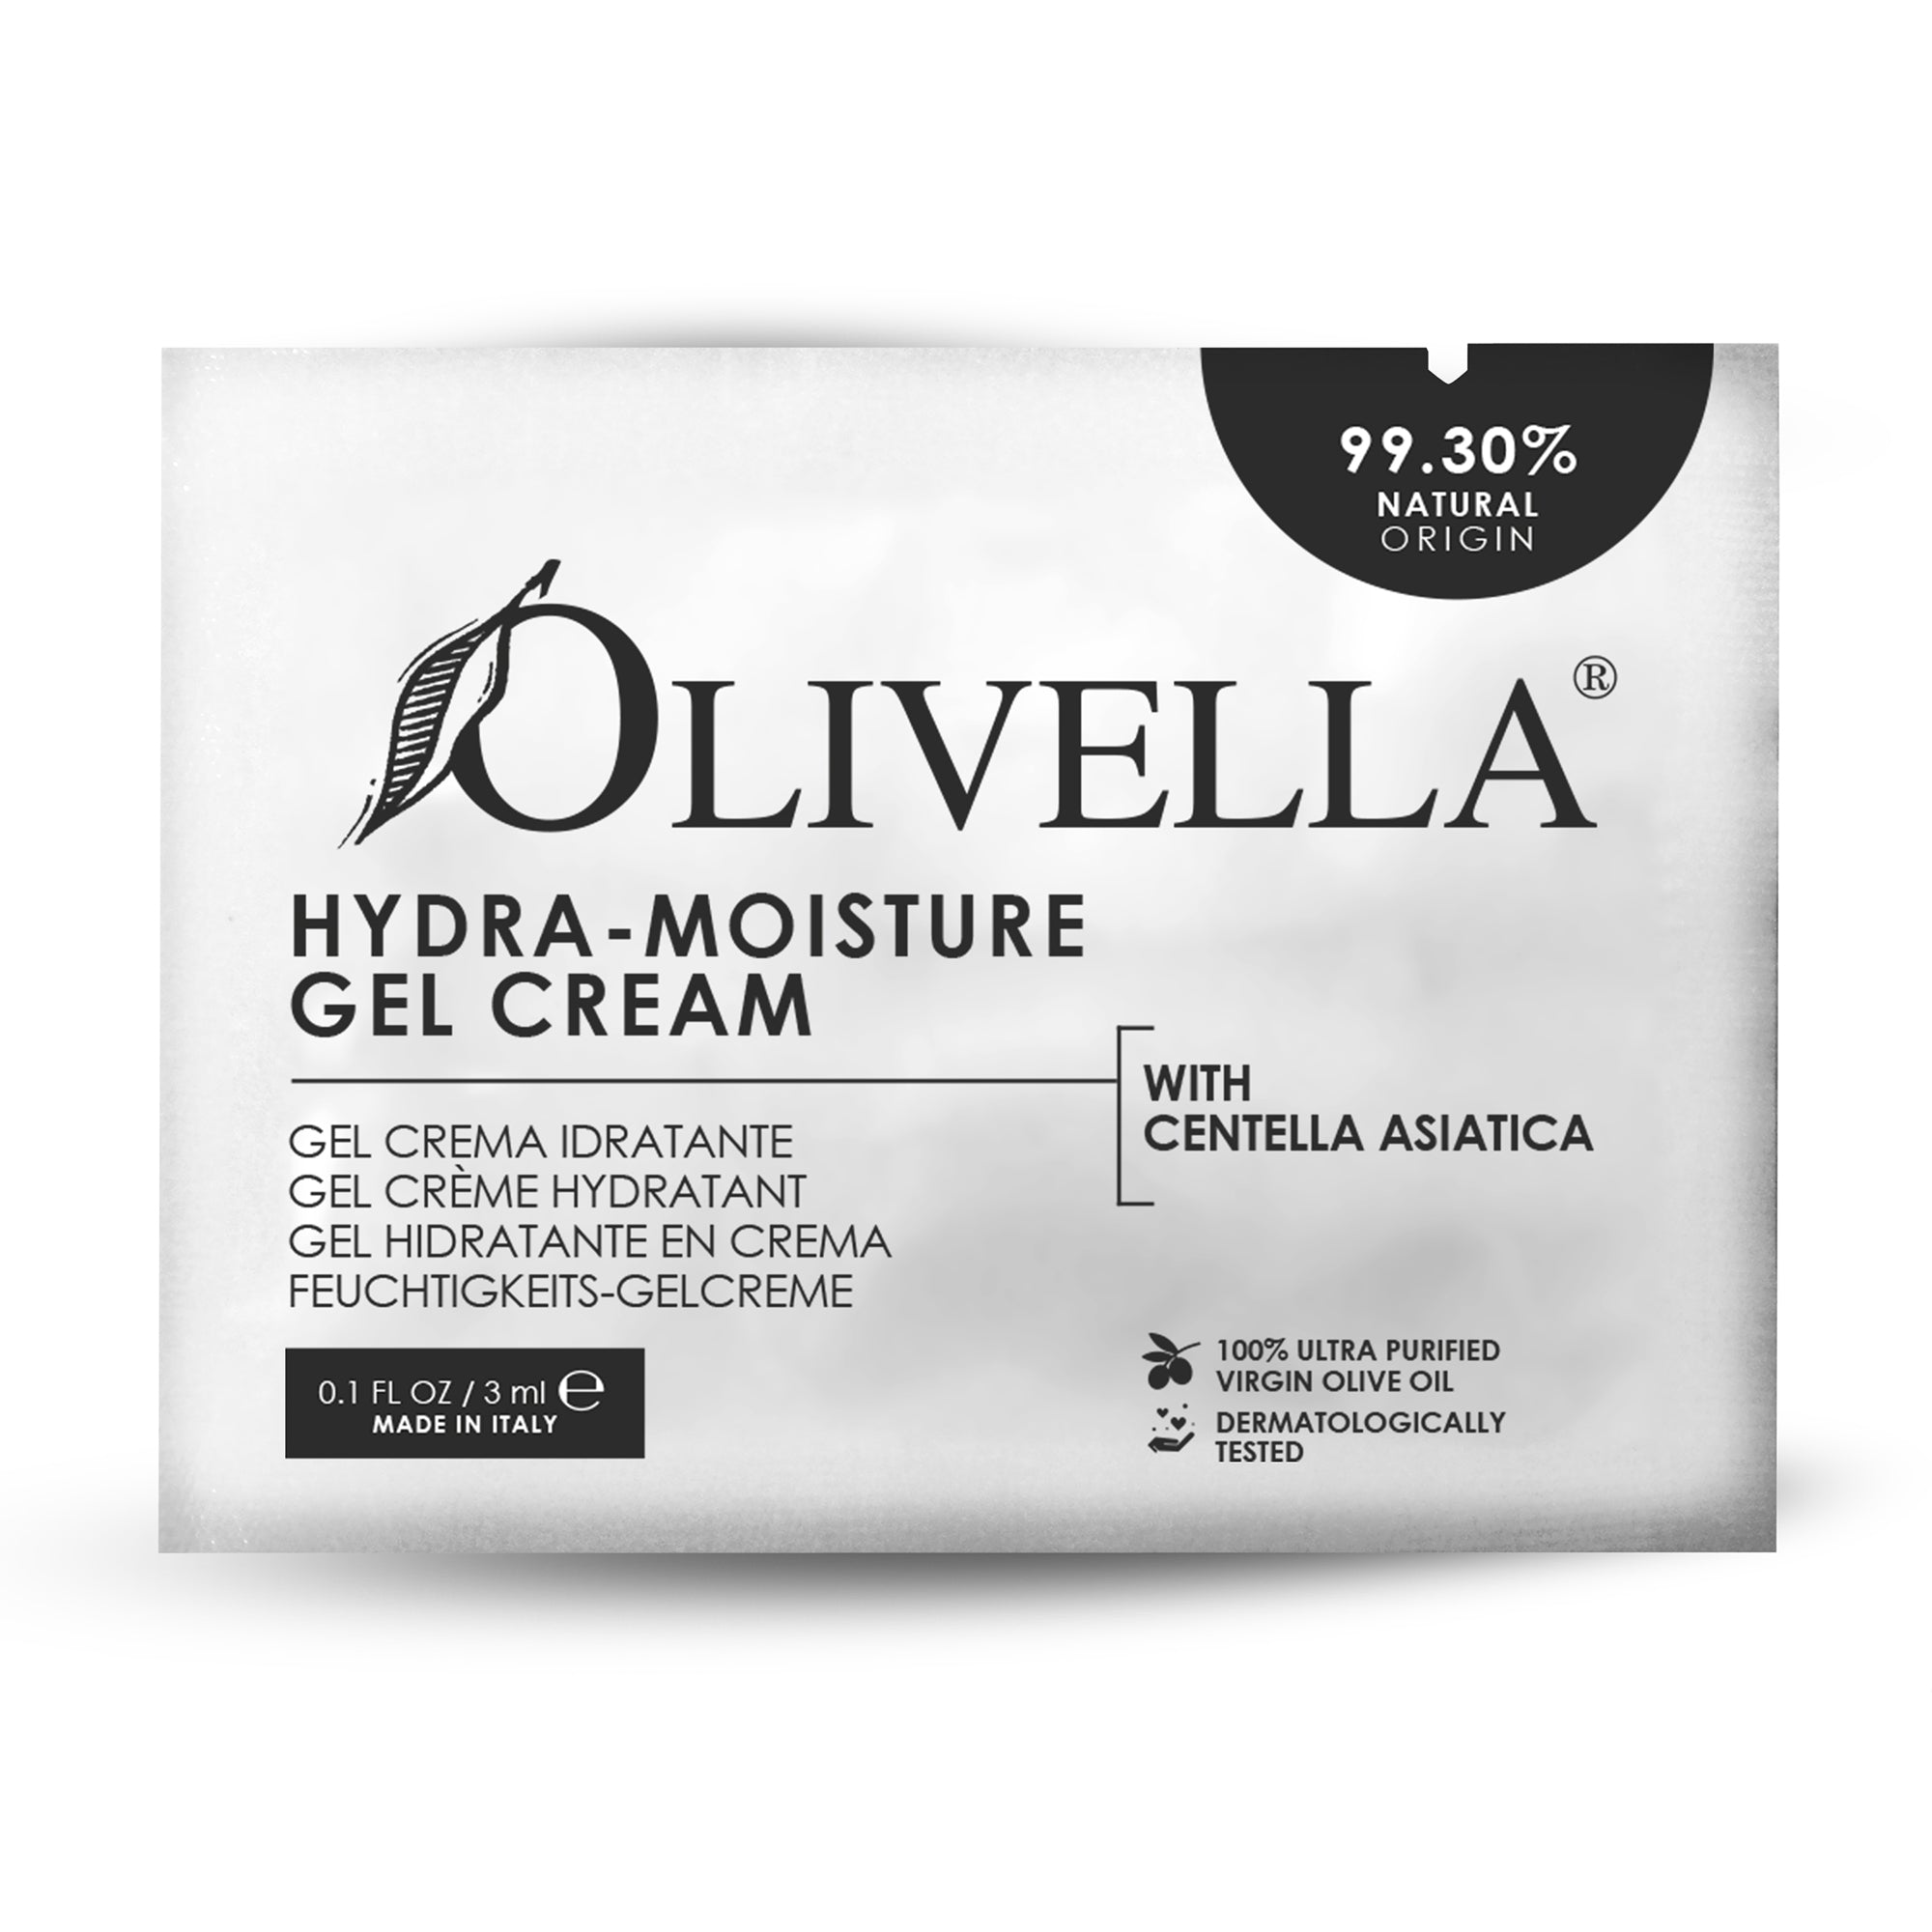 Olivella Hydra-Moisture Gel Cream Sample